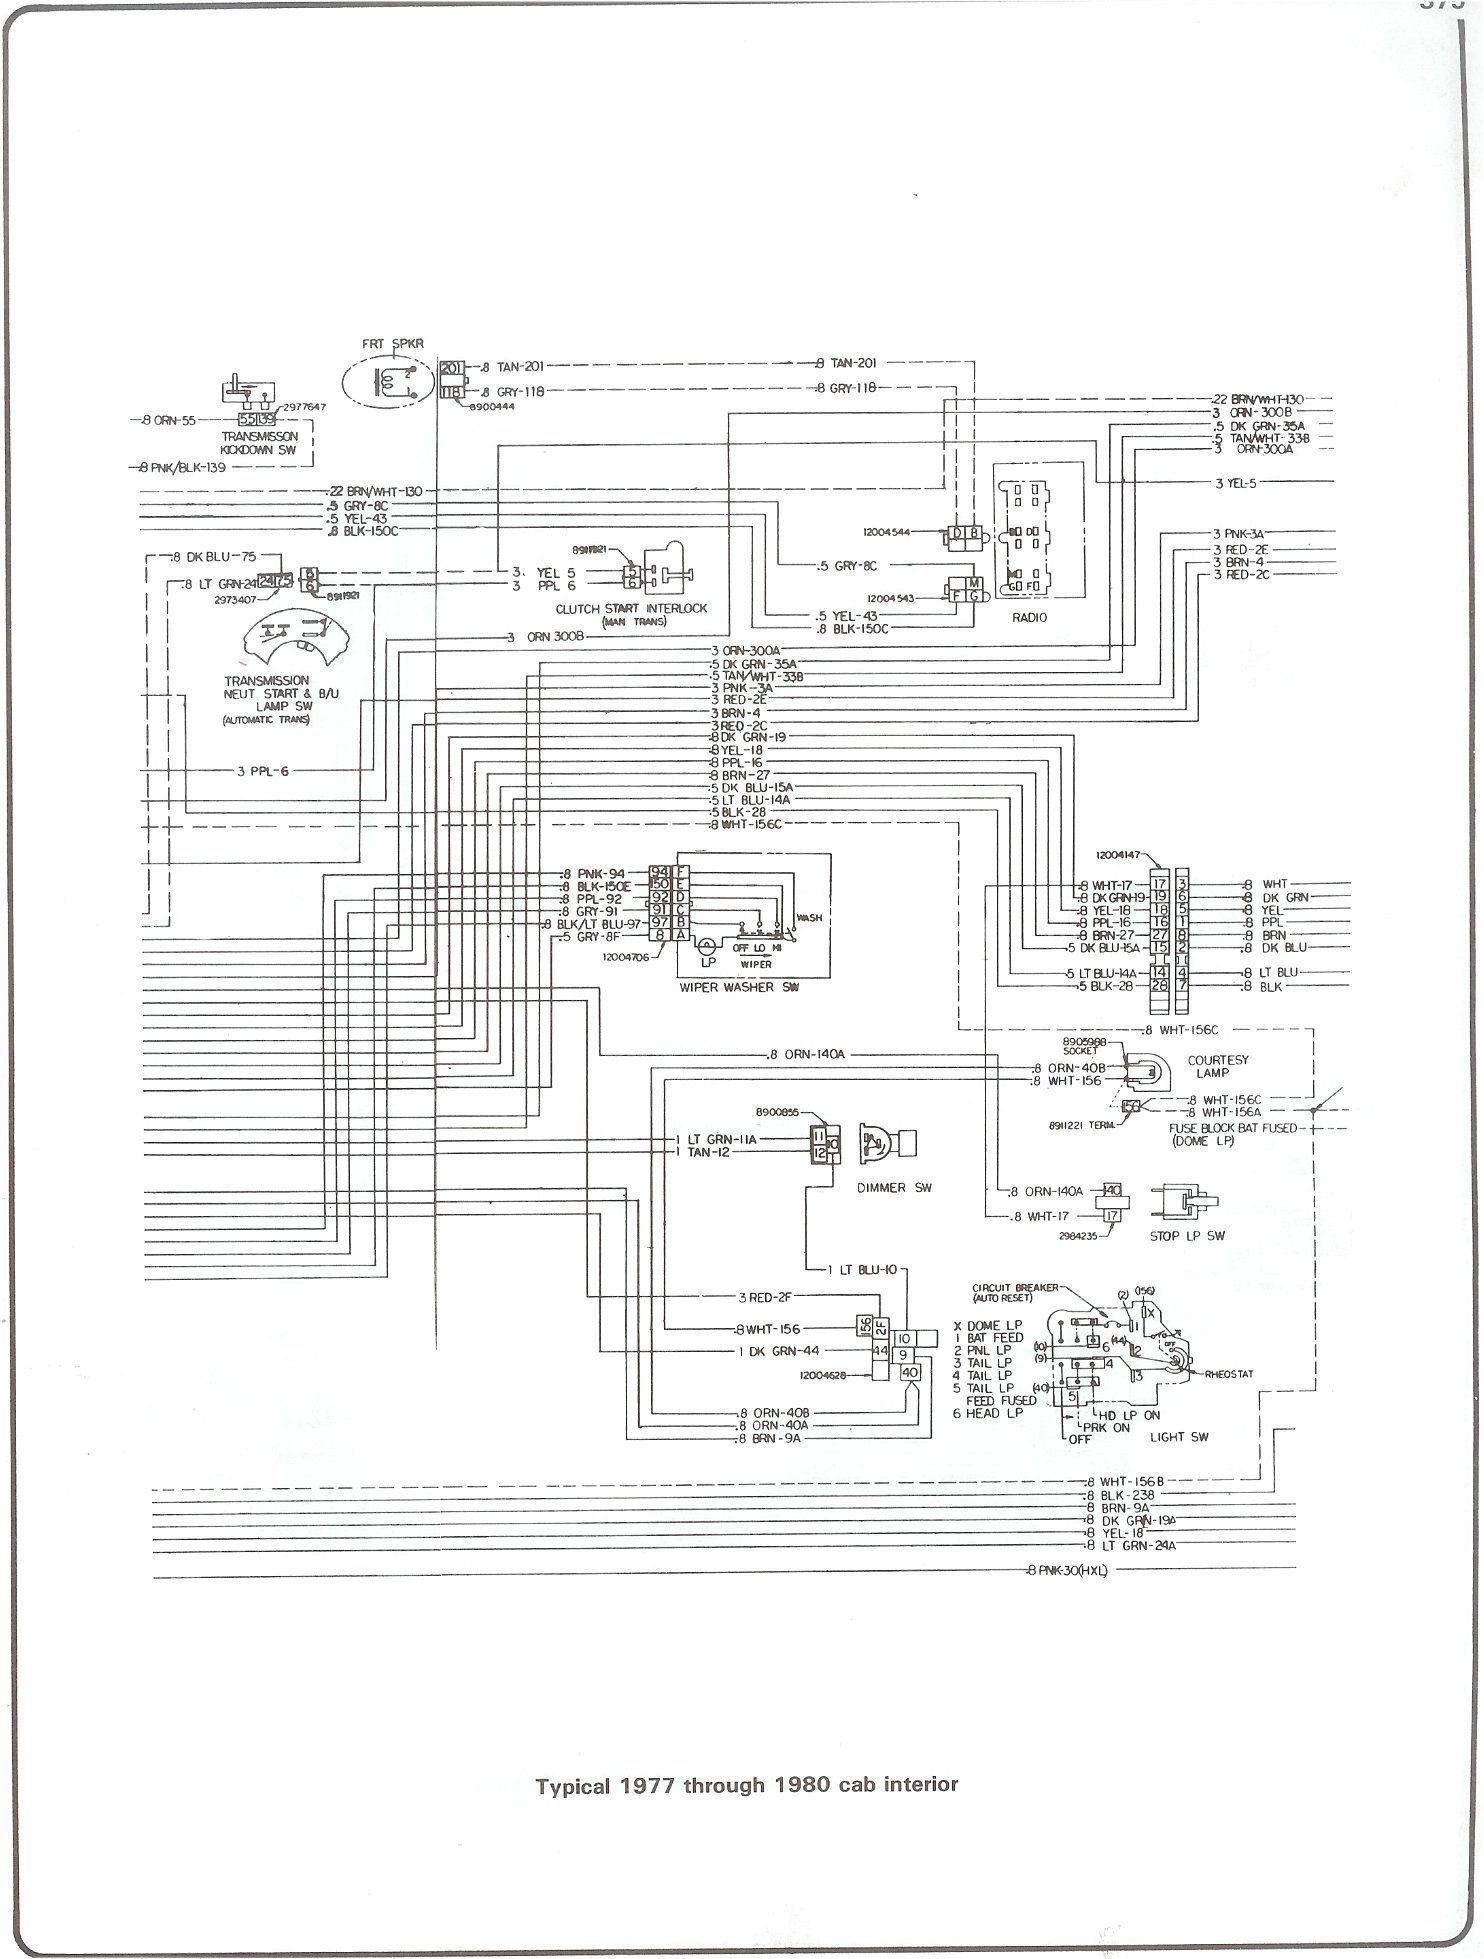 1977 Chevy C10 Wiring Diagrams Free Diagram For You 2002 Lexus Es300 Engine Complete 73 87 Rh Forum 87chevytrucks Com 1972 Truck Ignition